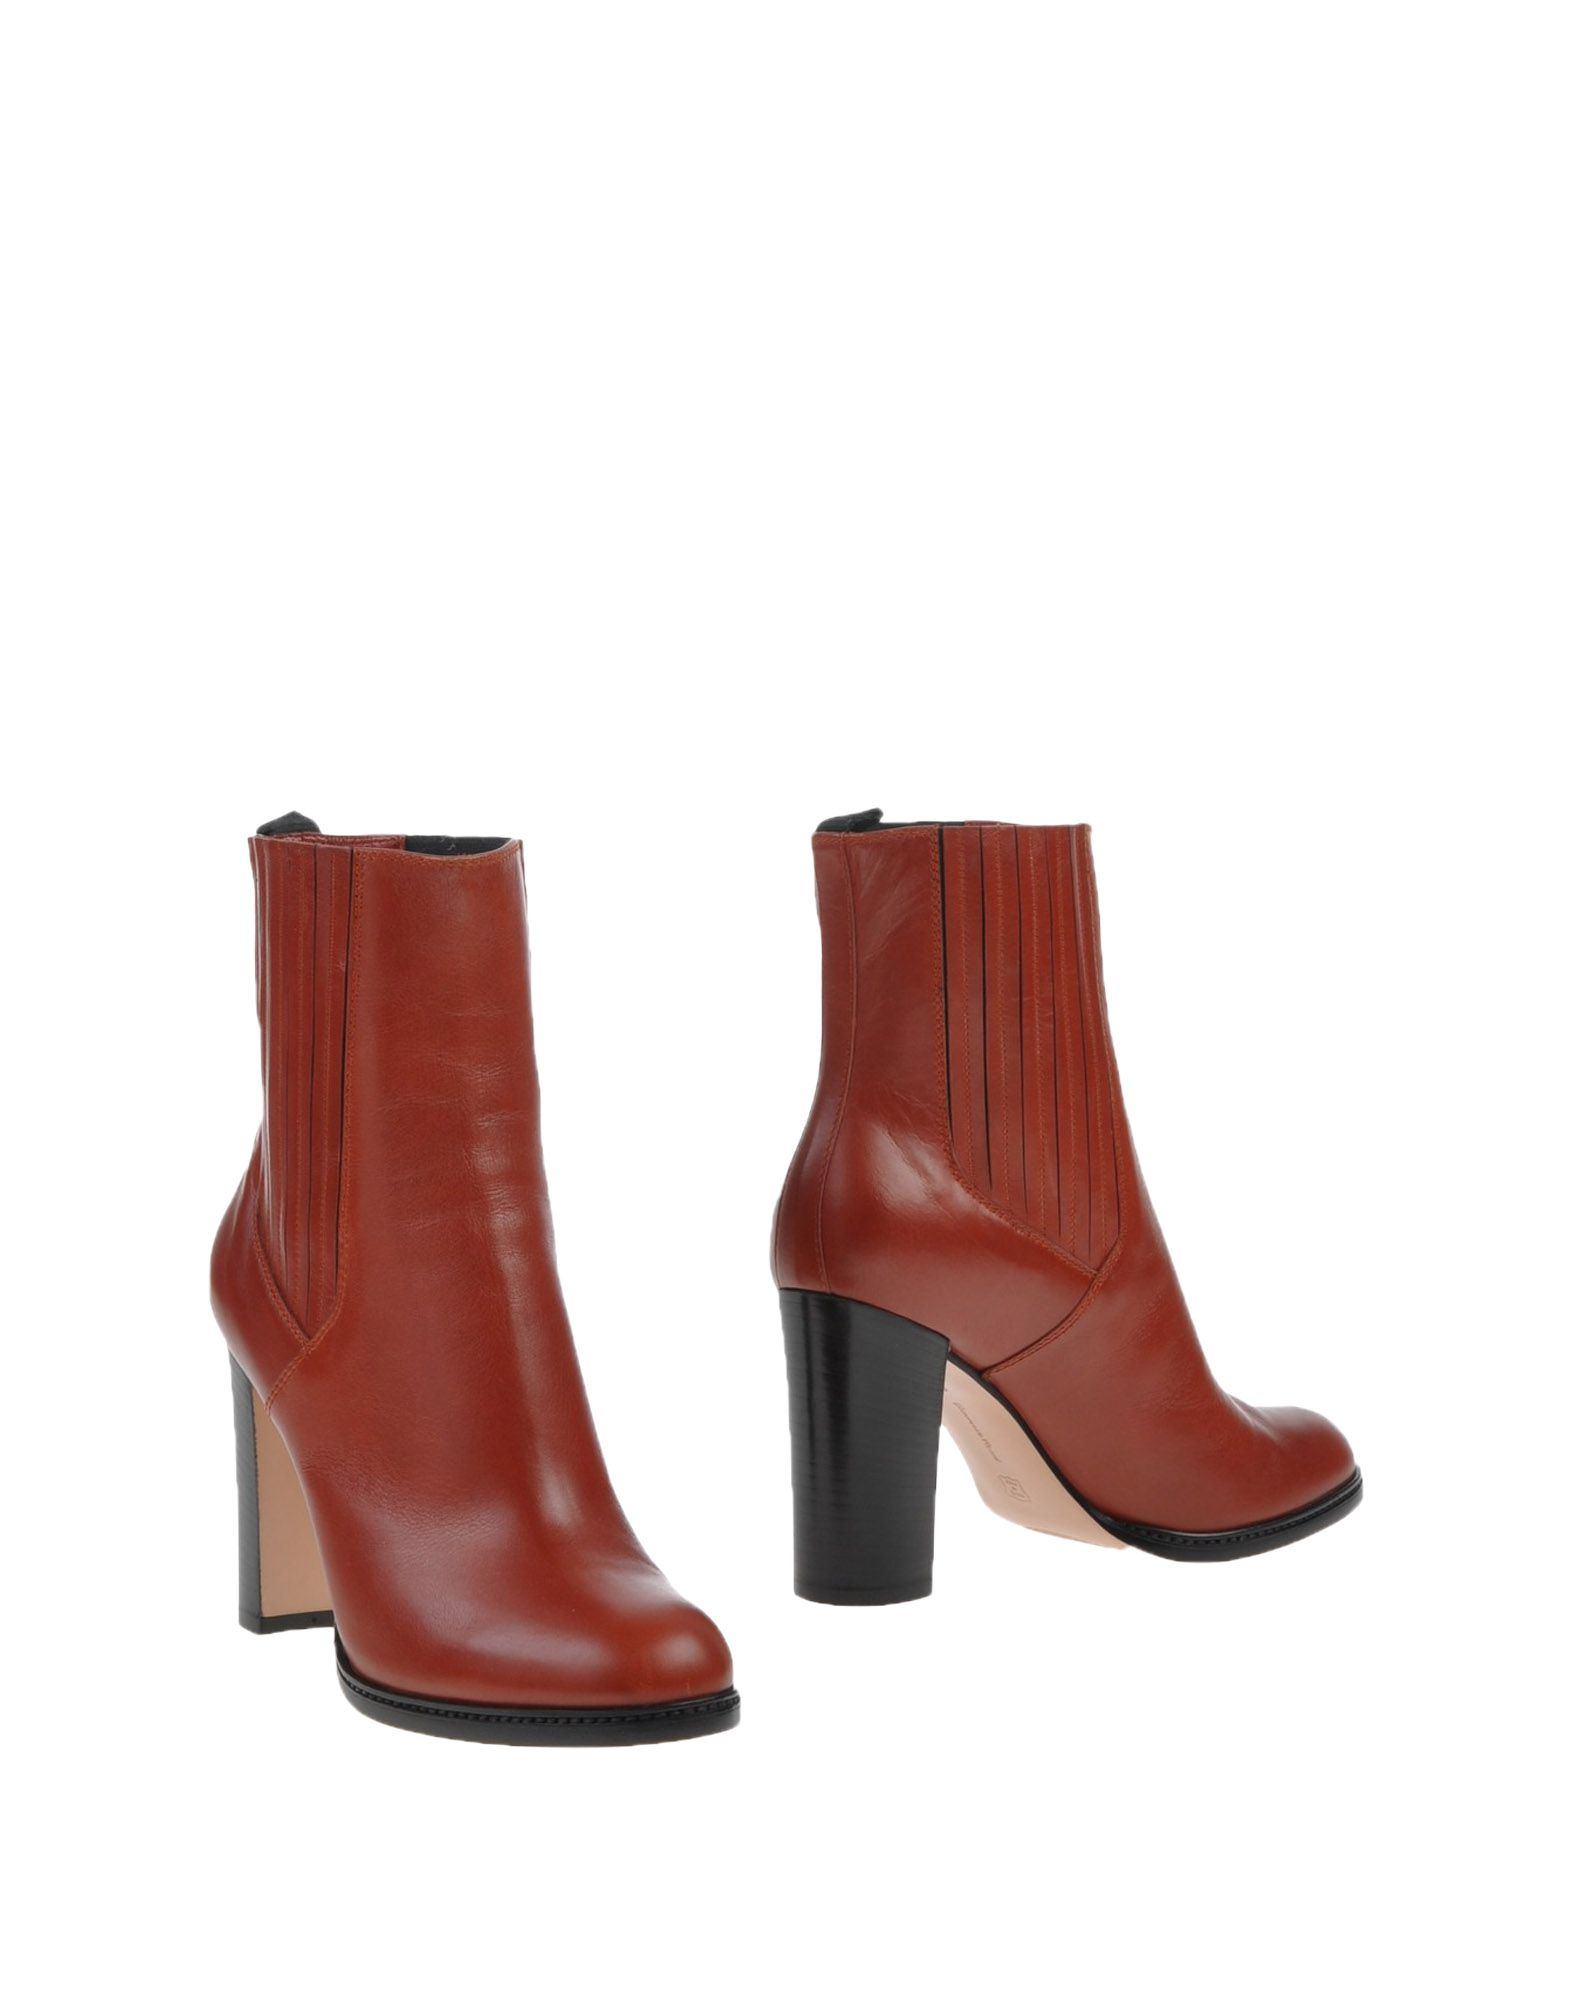 gianvito rossi ankle boots in red rust lyst. Black Bedroom Furniture Sets. Home Design Ideas